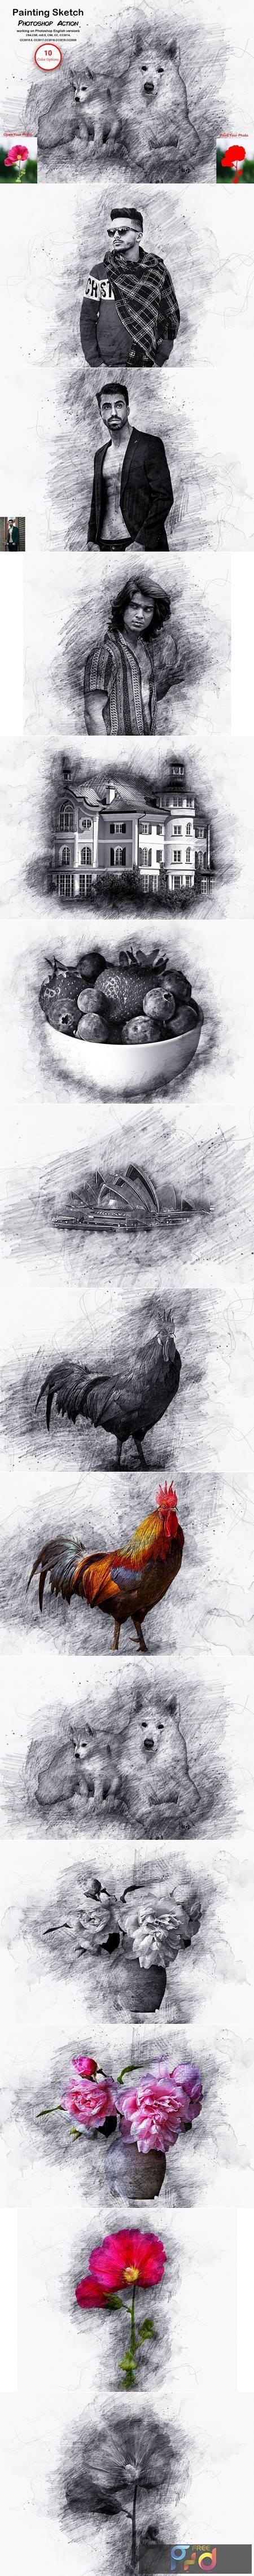 Painting Sketch Photoshop Action 5611943 1